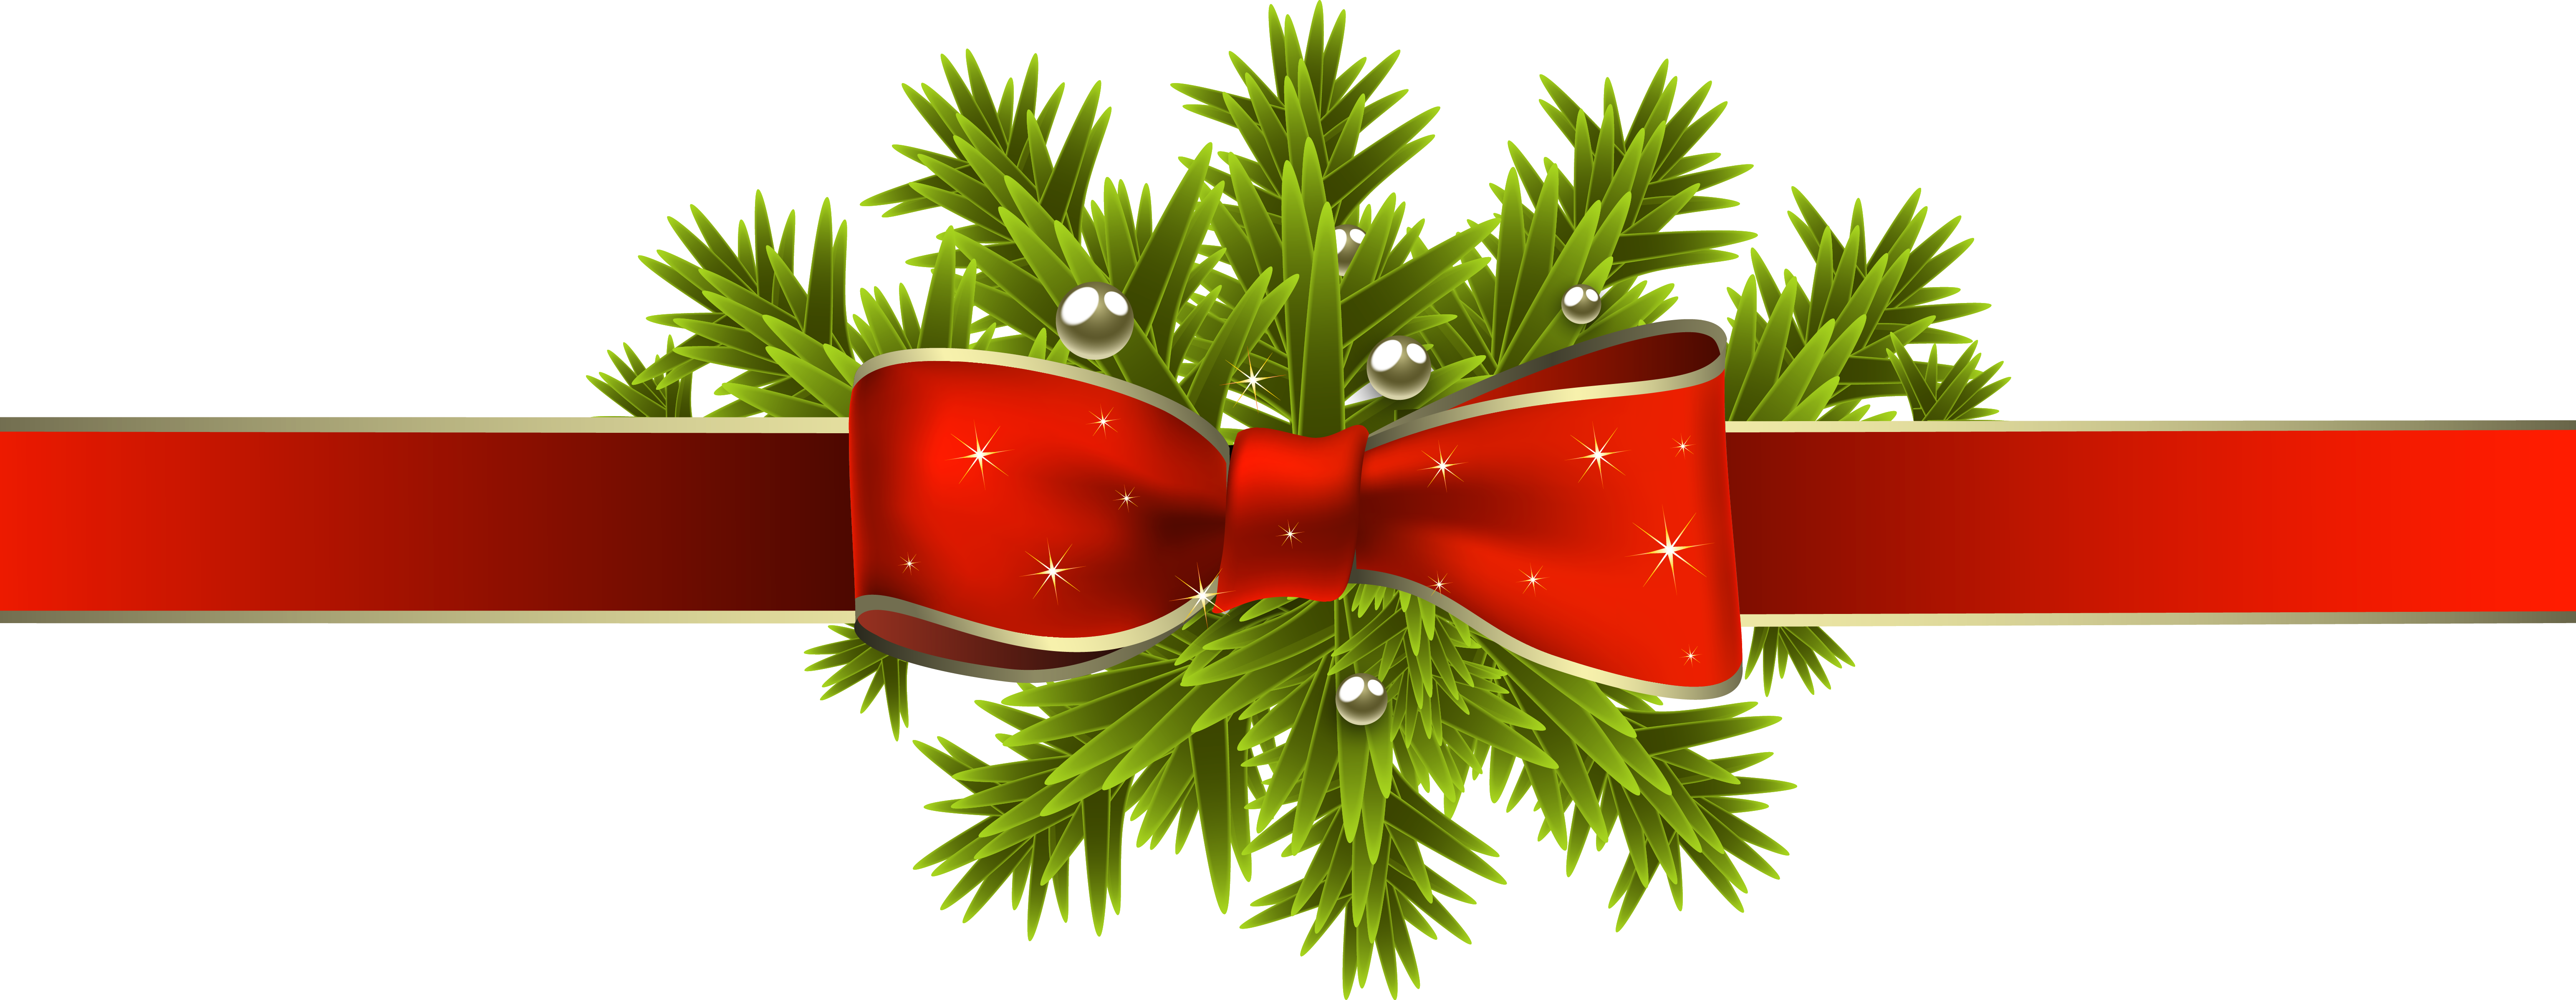 Red holiday bow png. Christmas ribbon with pine